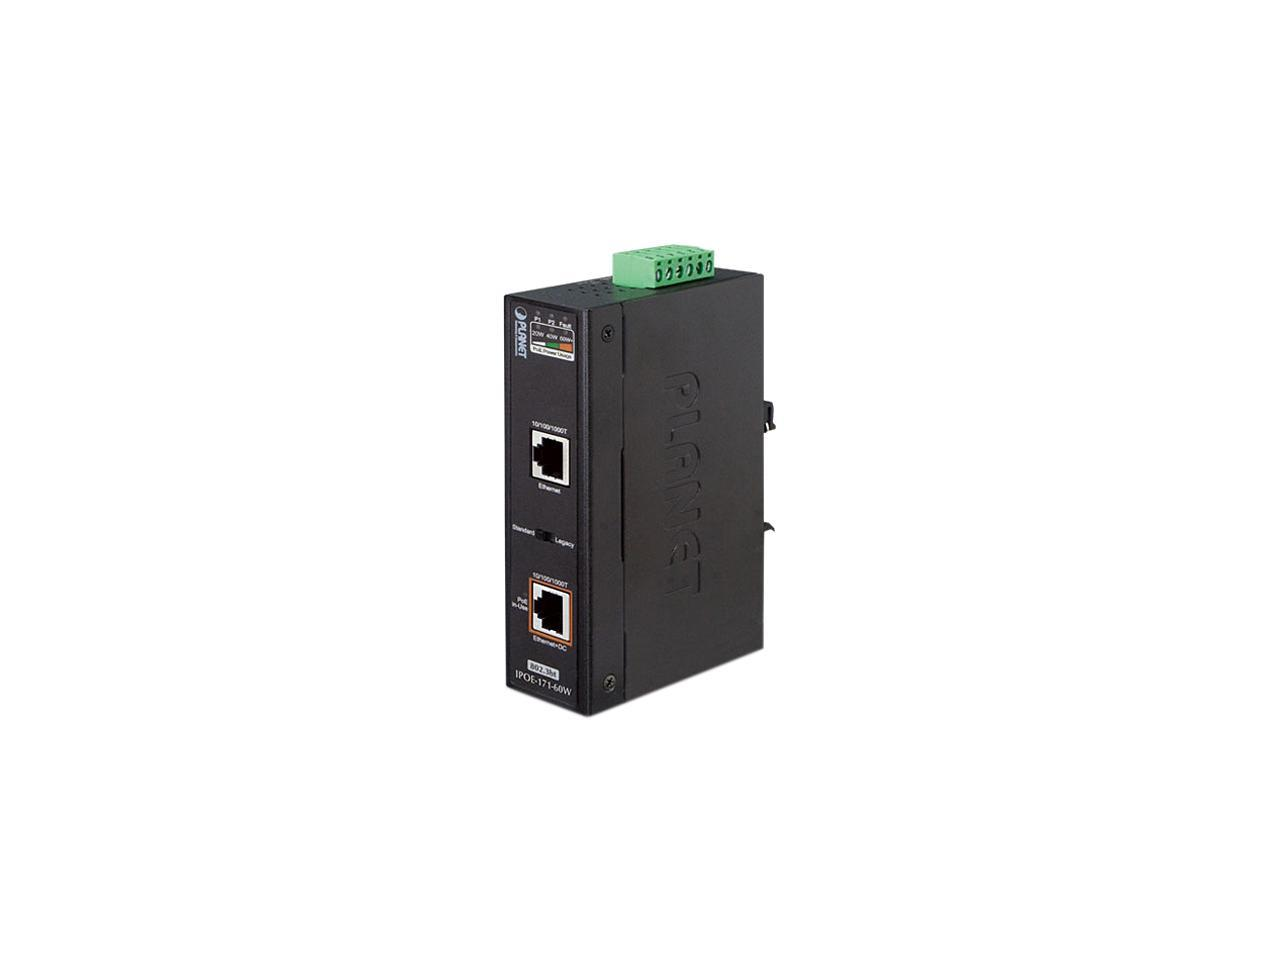 Details about PLANET IPOE-171-60W Industrial Single-Port 10/100/1000 Mbps  802 3bt PoE Injector